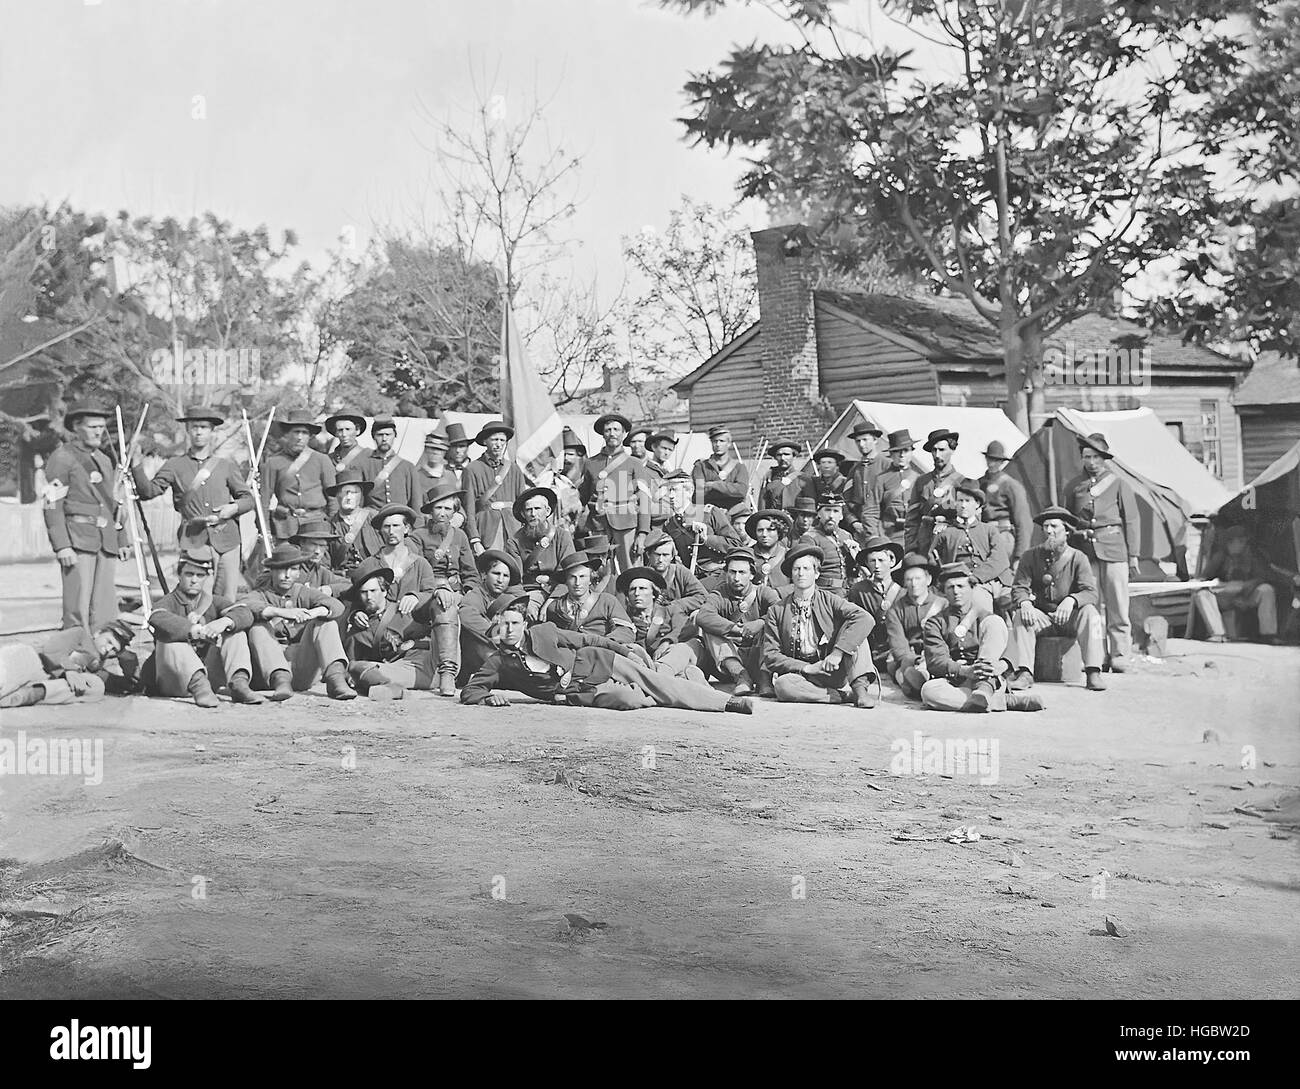 Group photo of the 44th Indiana Infantry during the American Civil War. - Stock Image